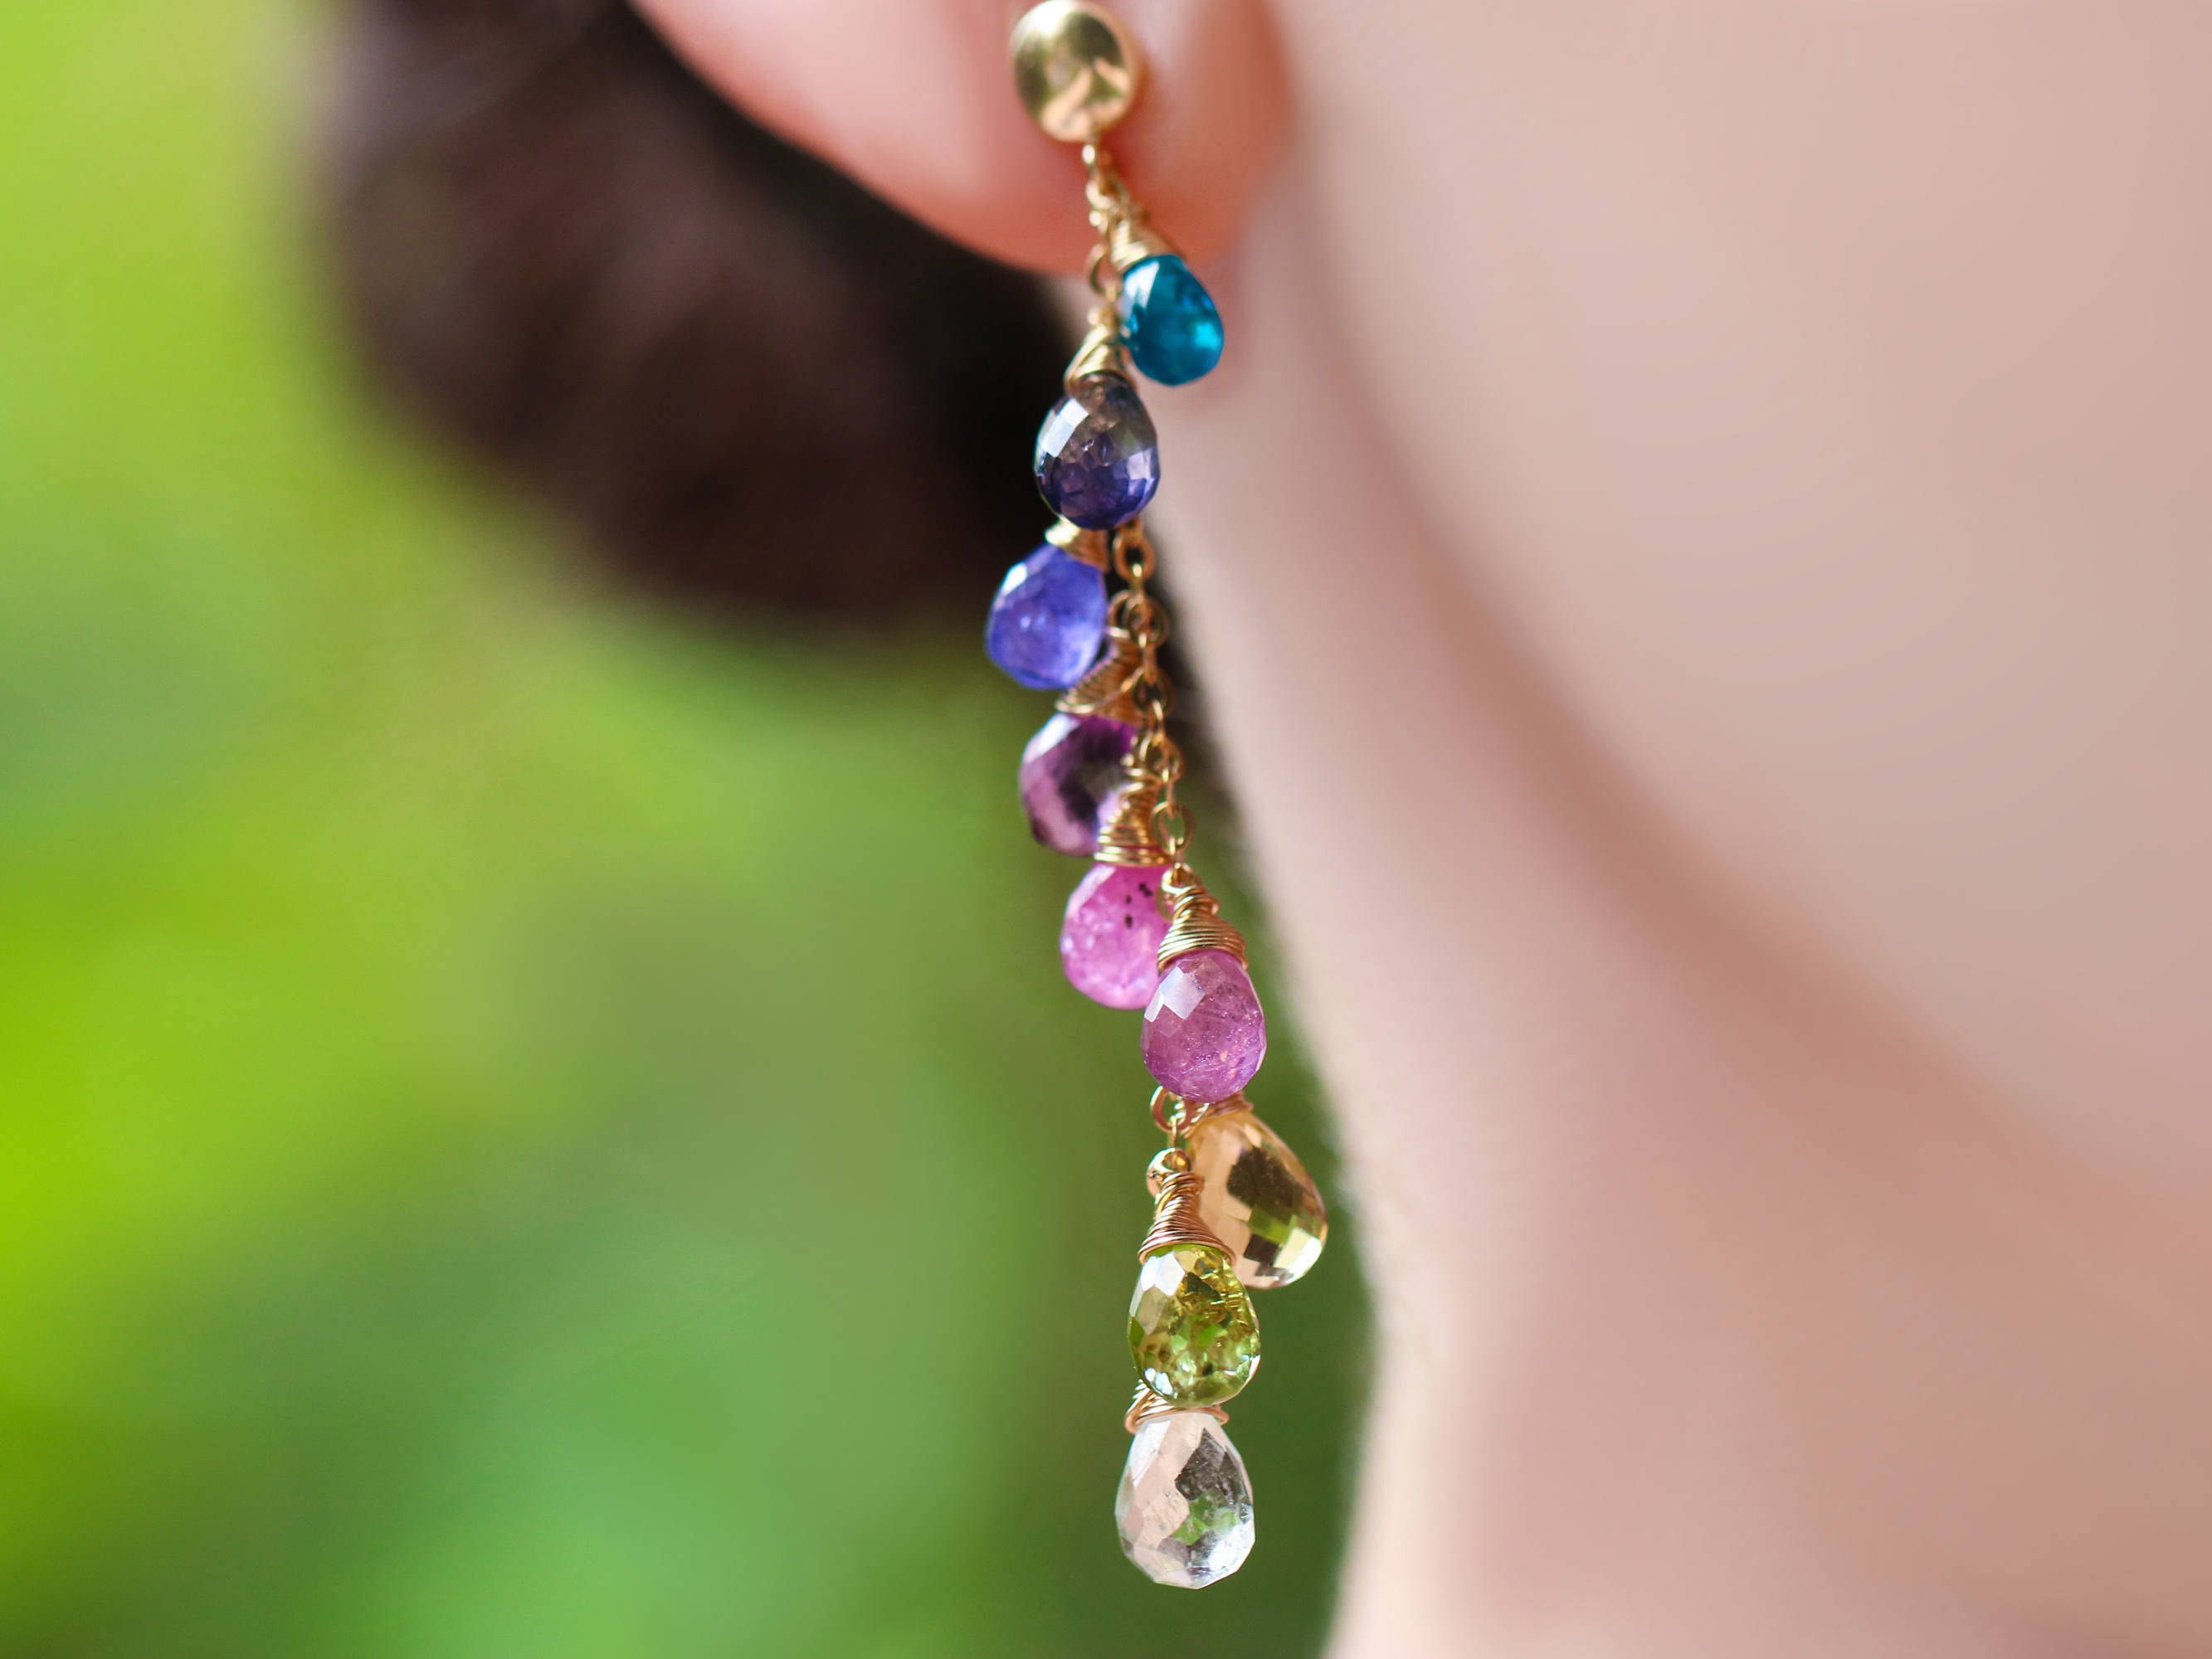 products ehsani rainbow lonny melody earrings lonnys s